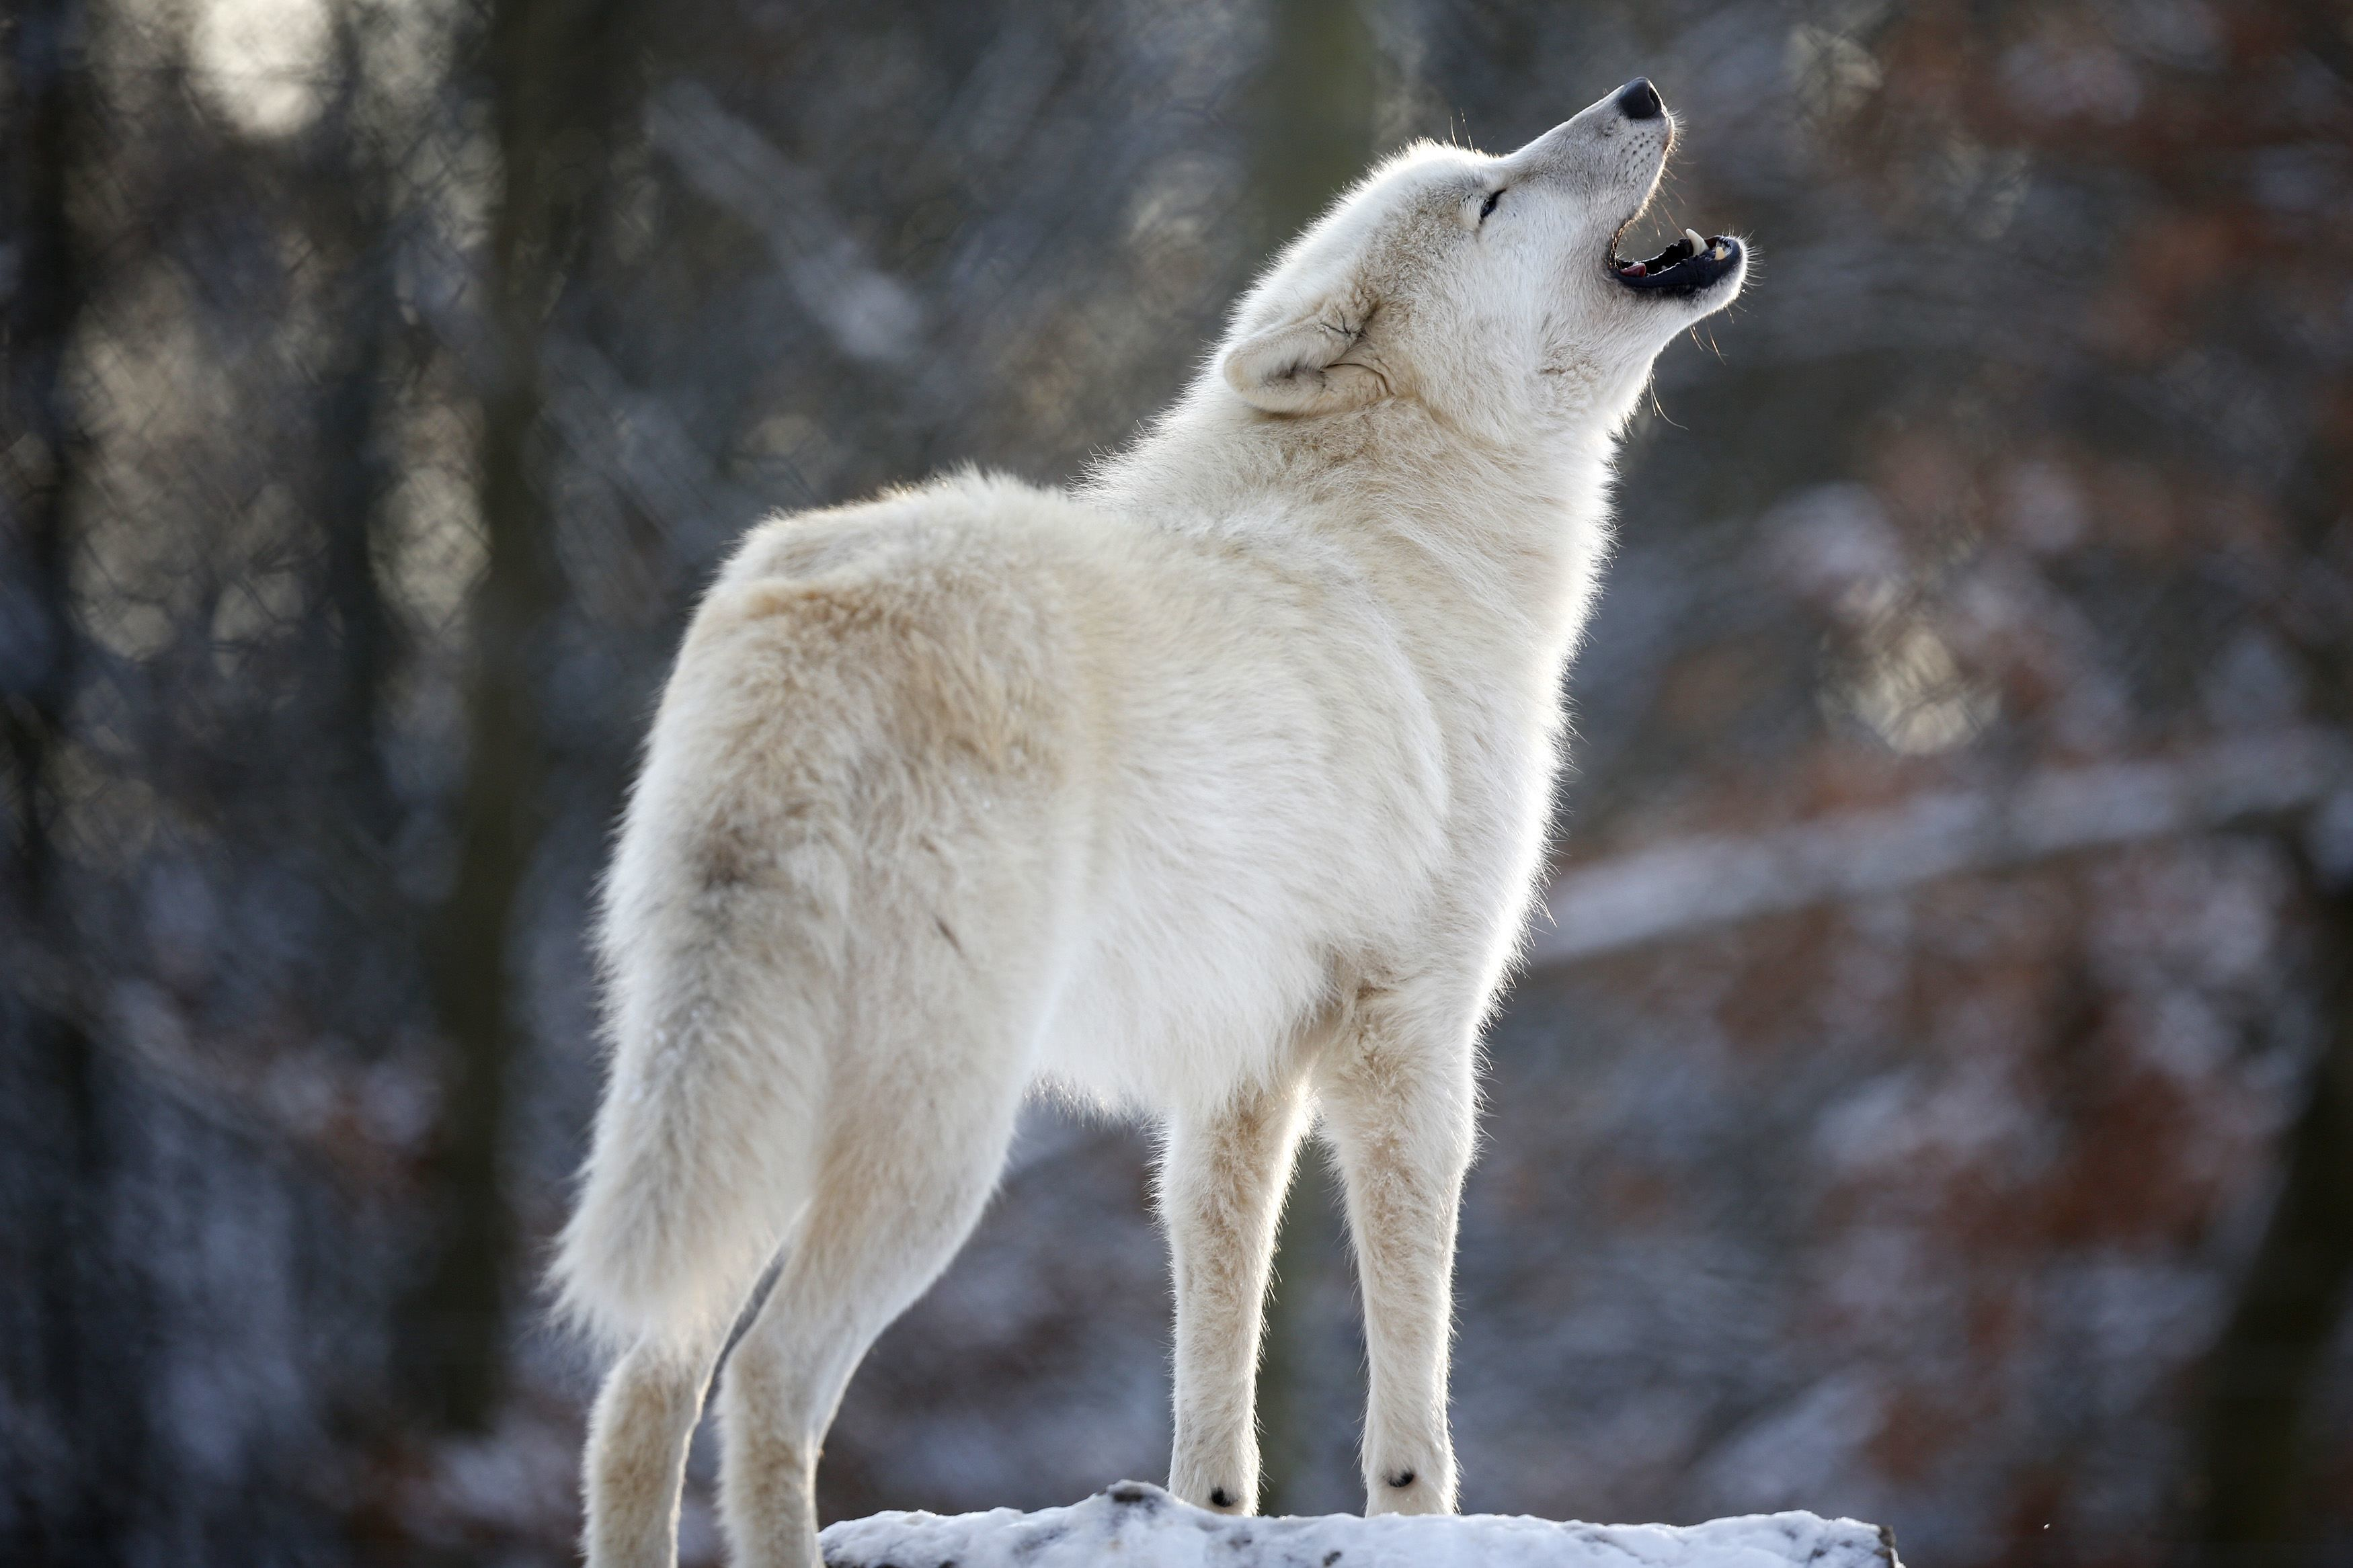 Wishing You All A Beautiful Day Be Well Be Happy Be Safe My Friends Loup Blanc Loup Arctique Chien Loup